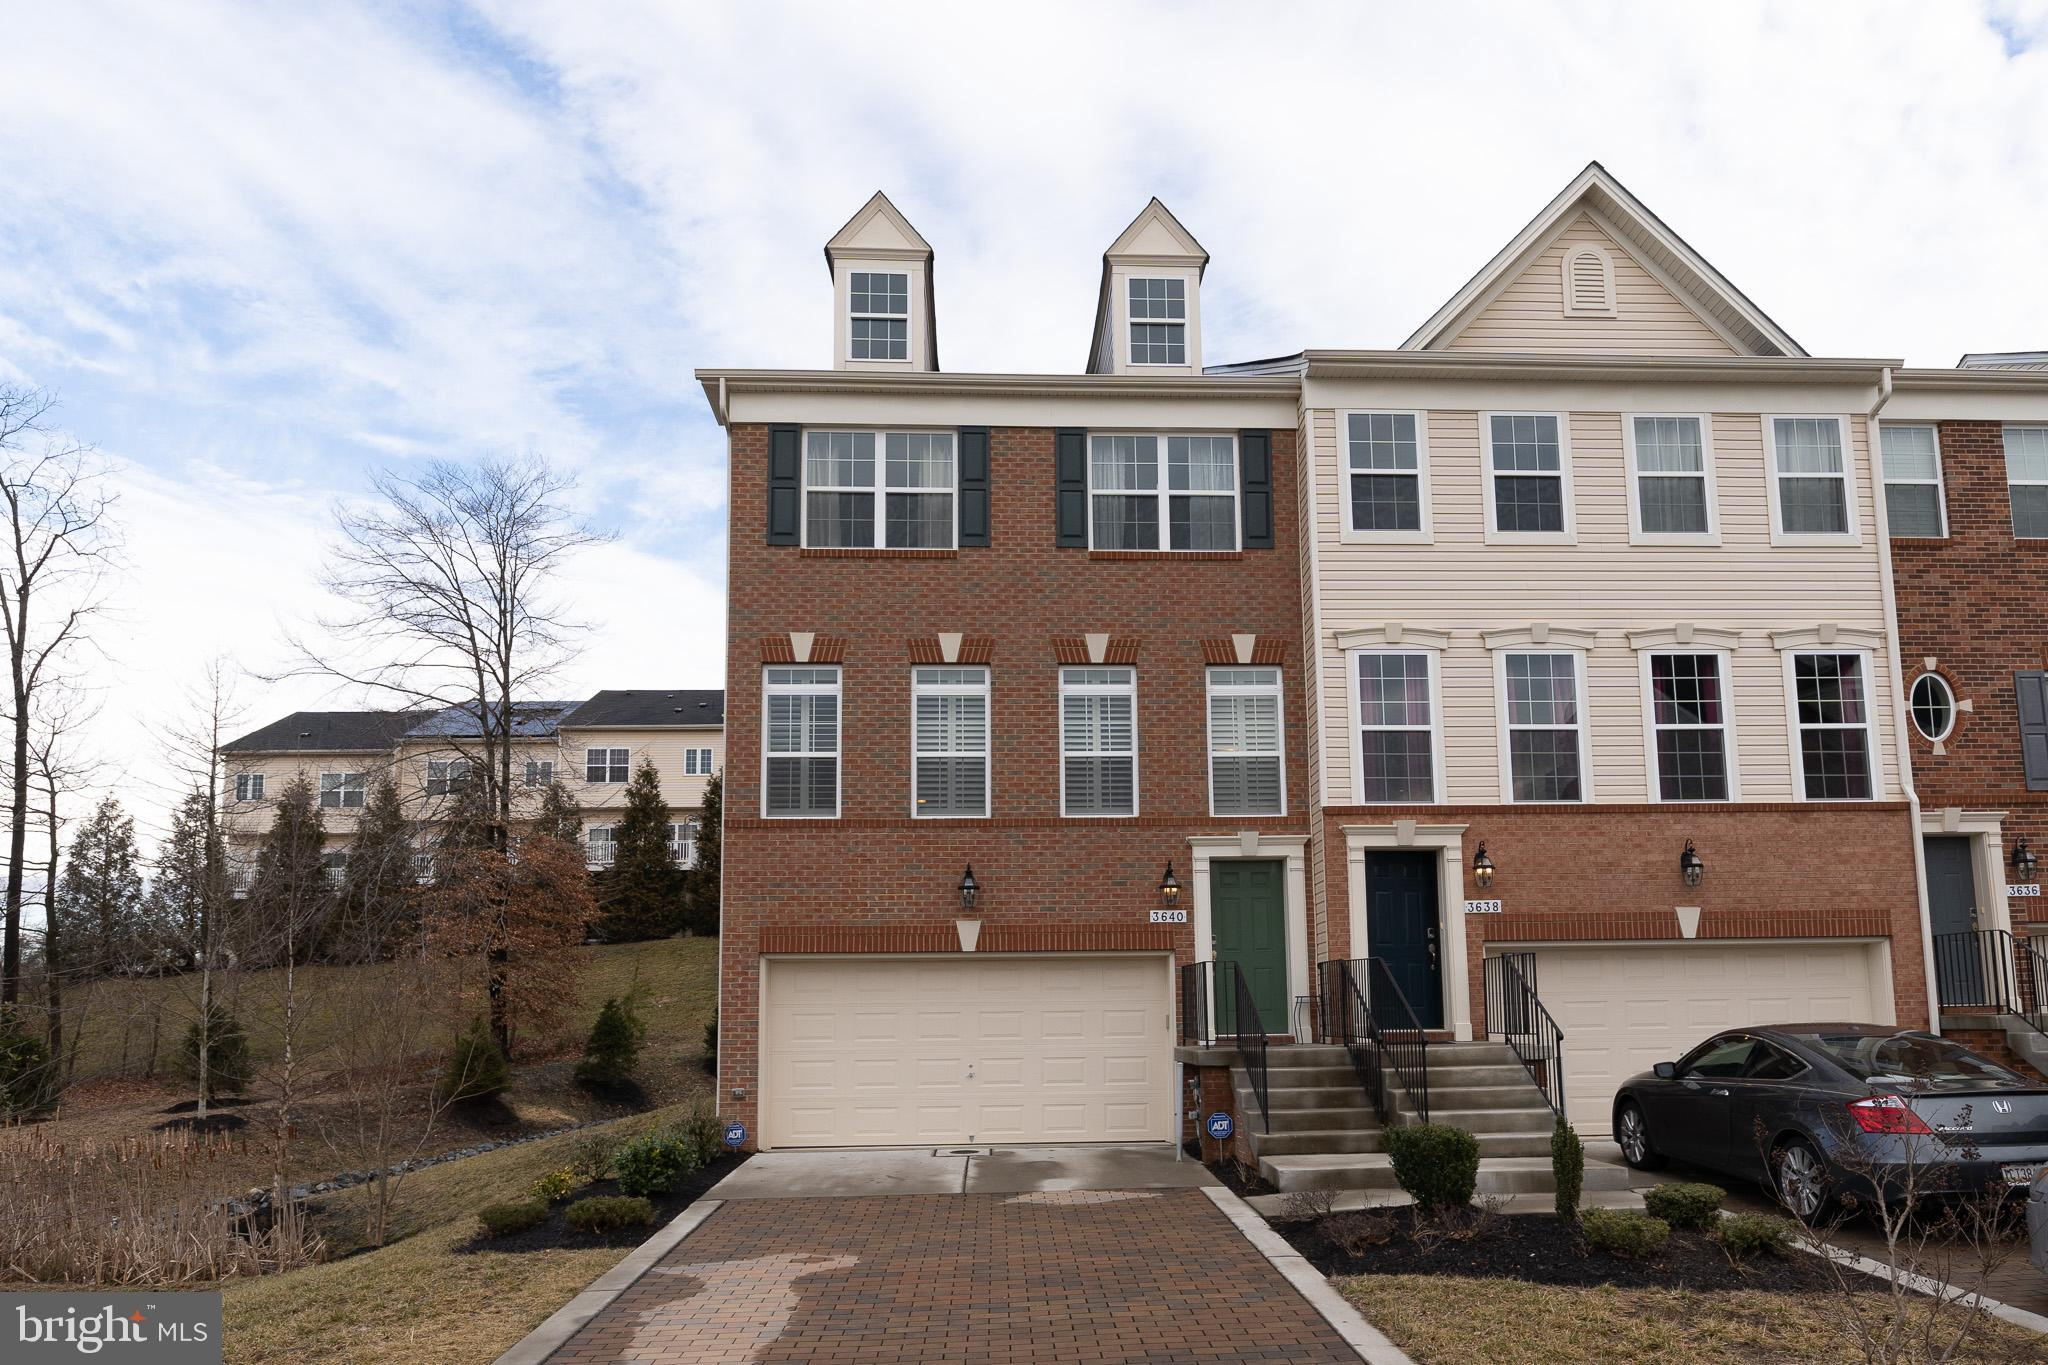 3640 SWEETBUSH TRAIL, LAUREL, MD 20724